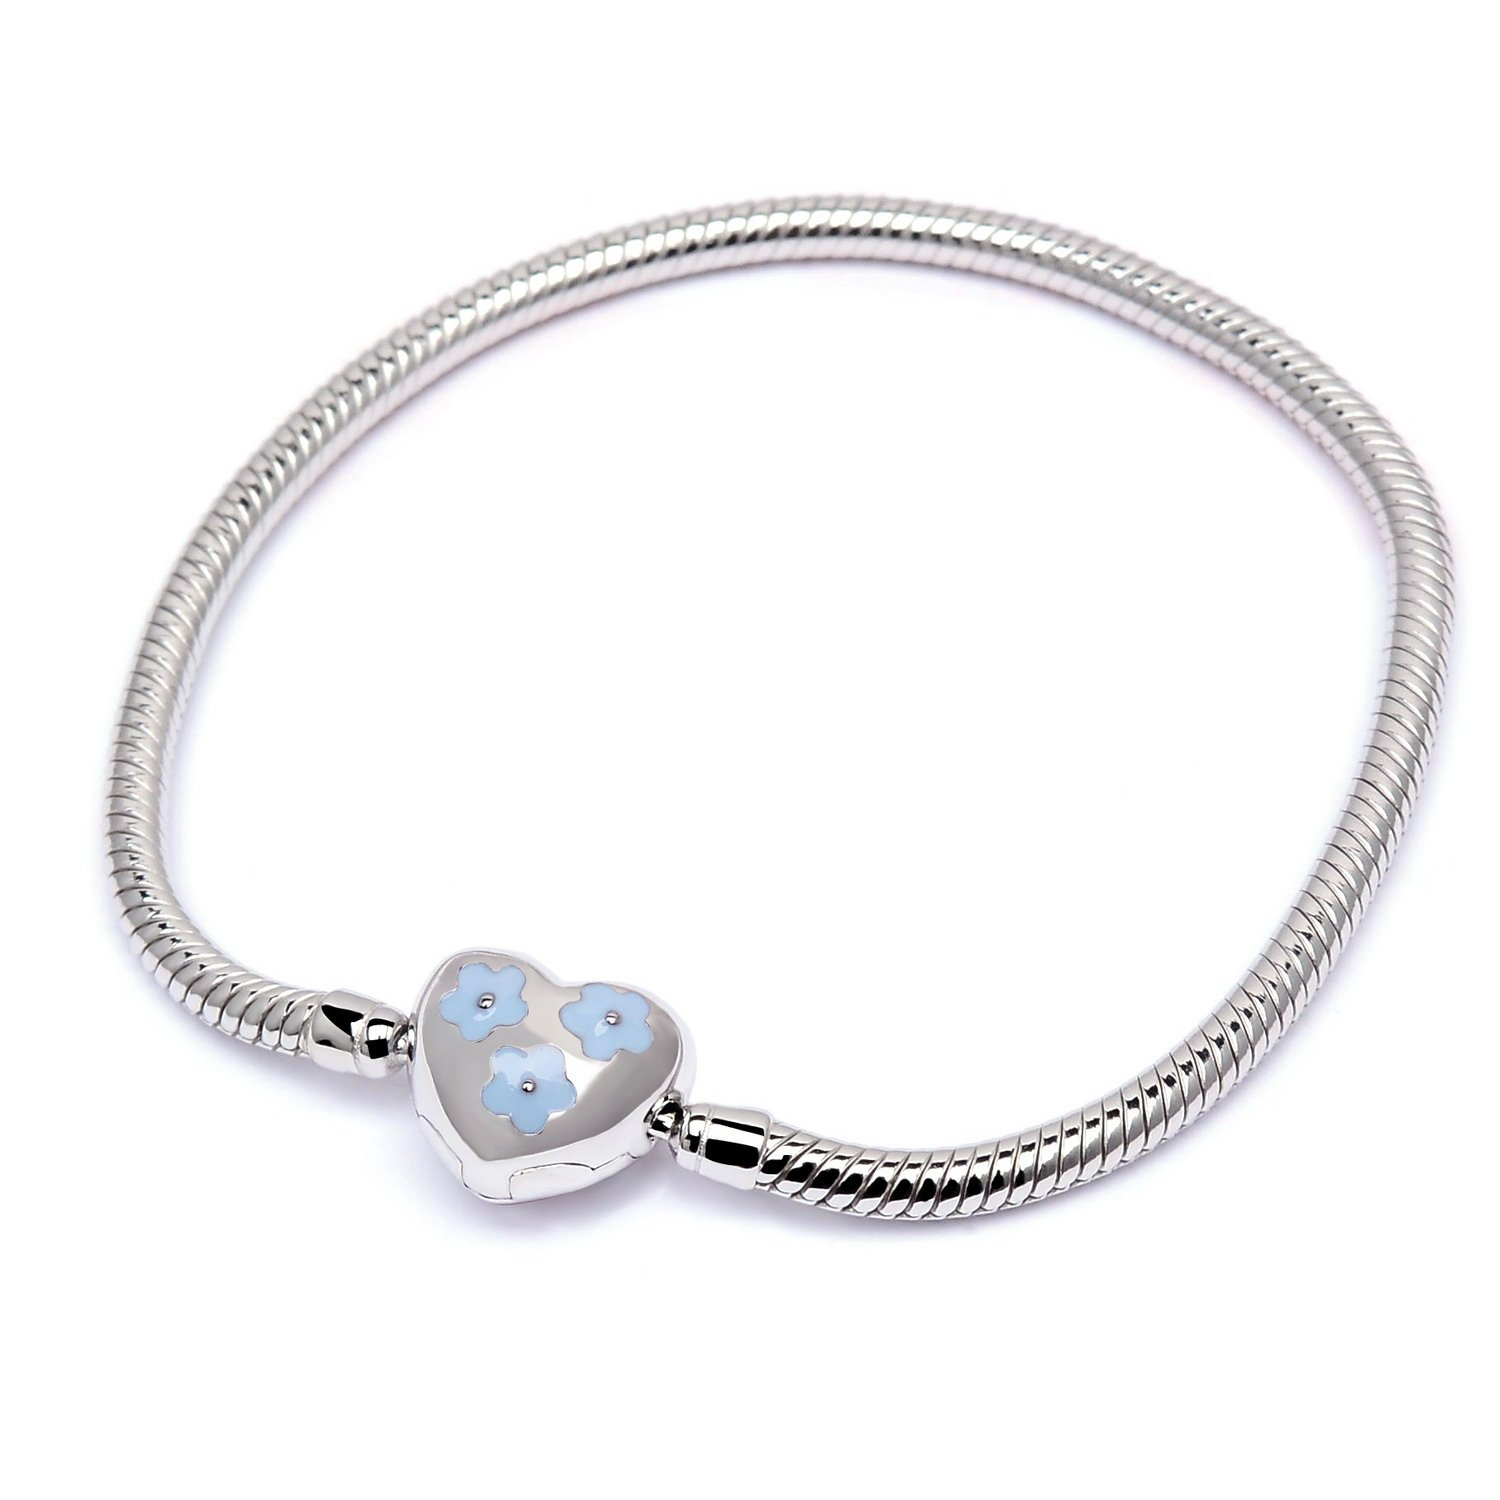 QILMILY 925 Sterling Silver Heart Charm Bracelets for Women Teen Girls Charm Bracelets without Charms Chain Thanksgiving Charm Bracelet with Heart Bead Charm European Clasp